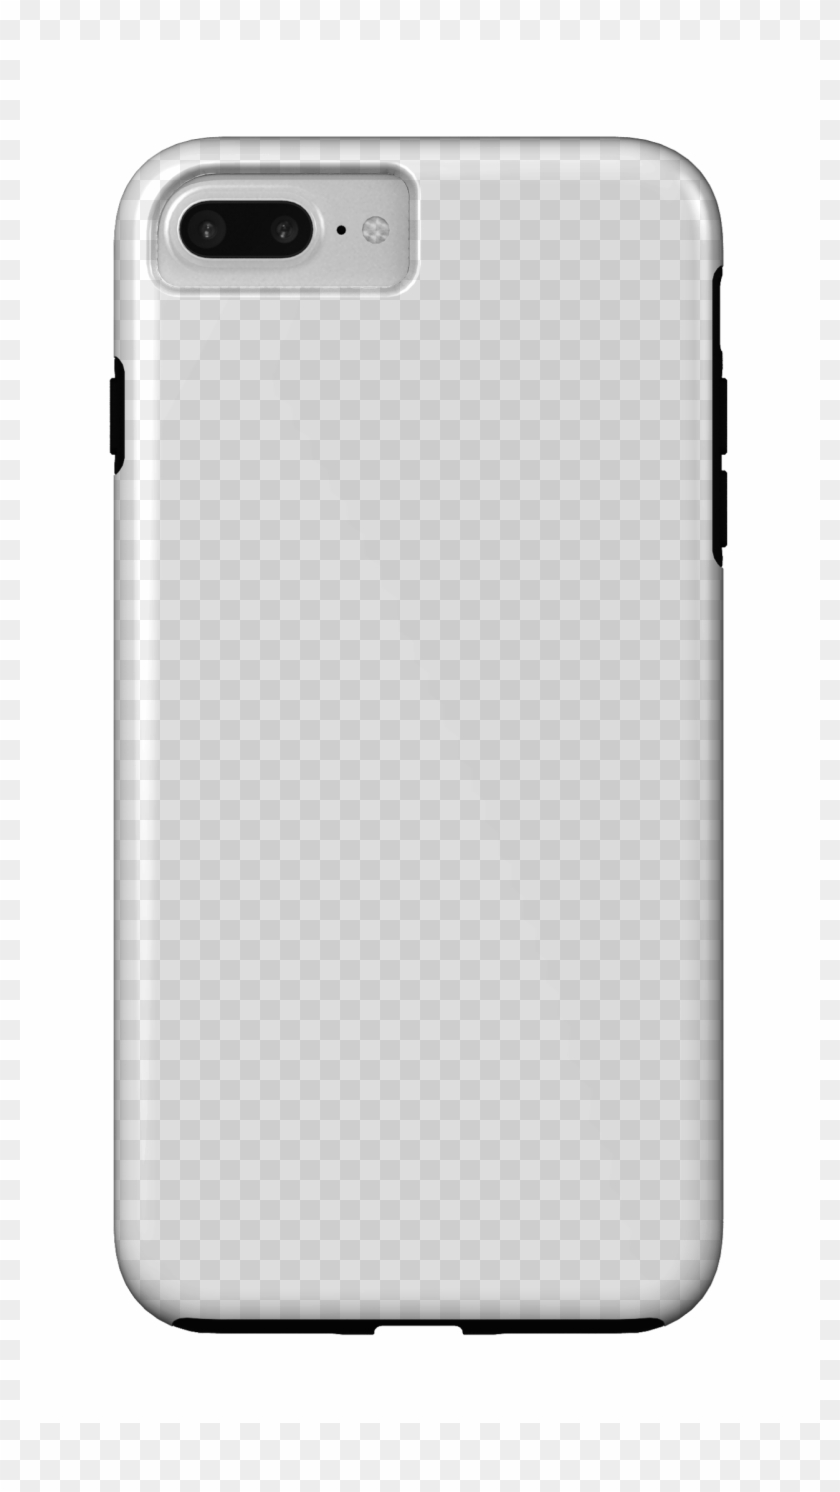 Iphone Svg Template Rose Gold - Mobile Phone Case Clipart #3134736